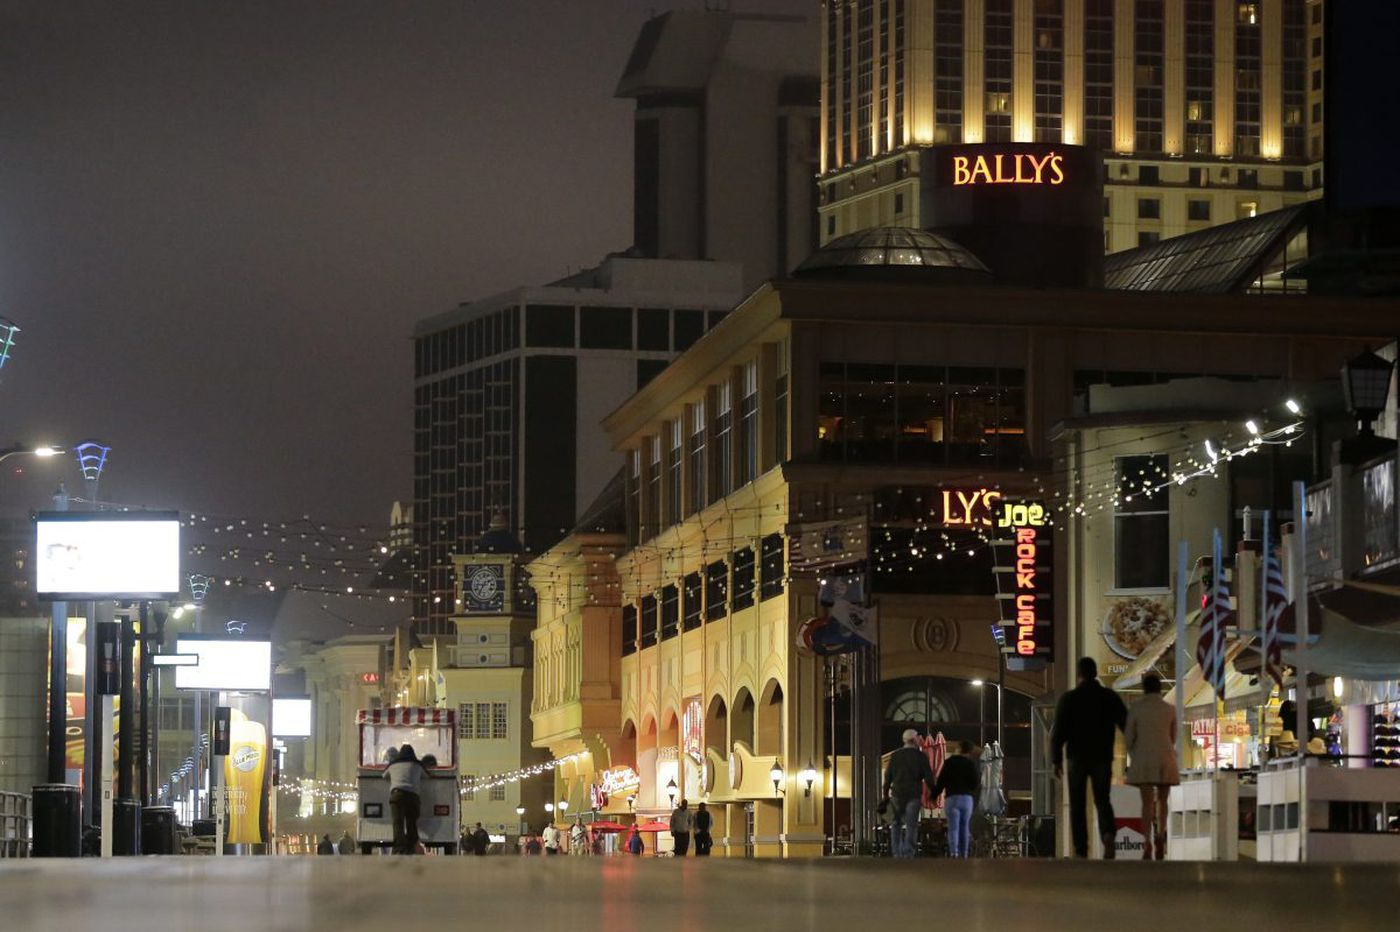 Atlantic City deserves another chance. Here are reasons it's a great place to play